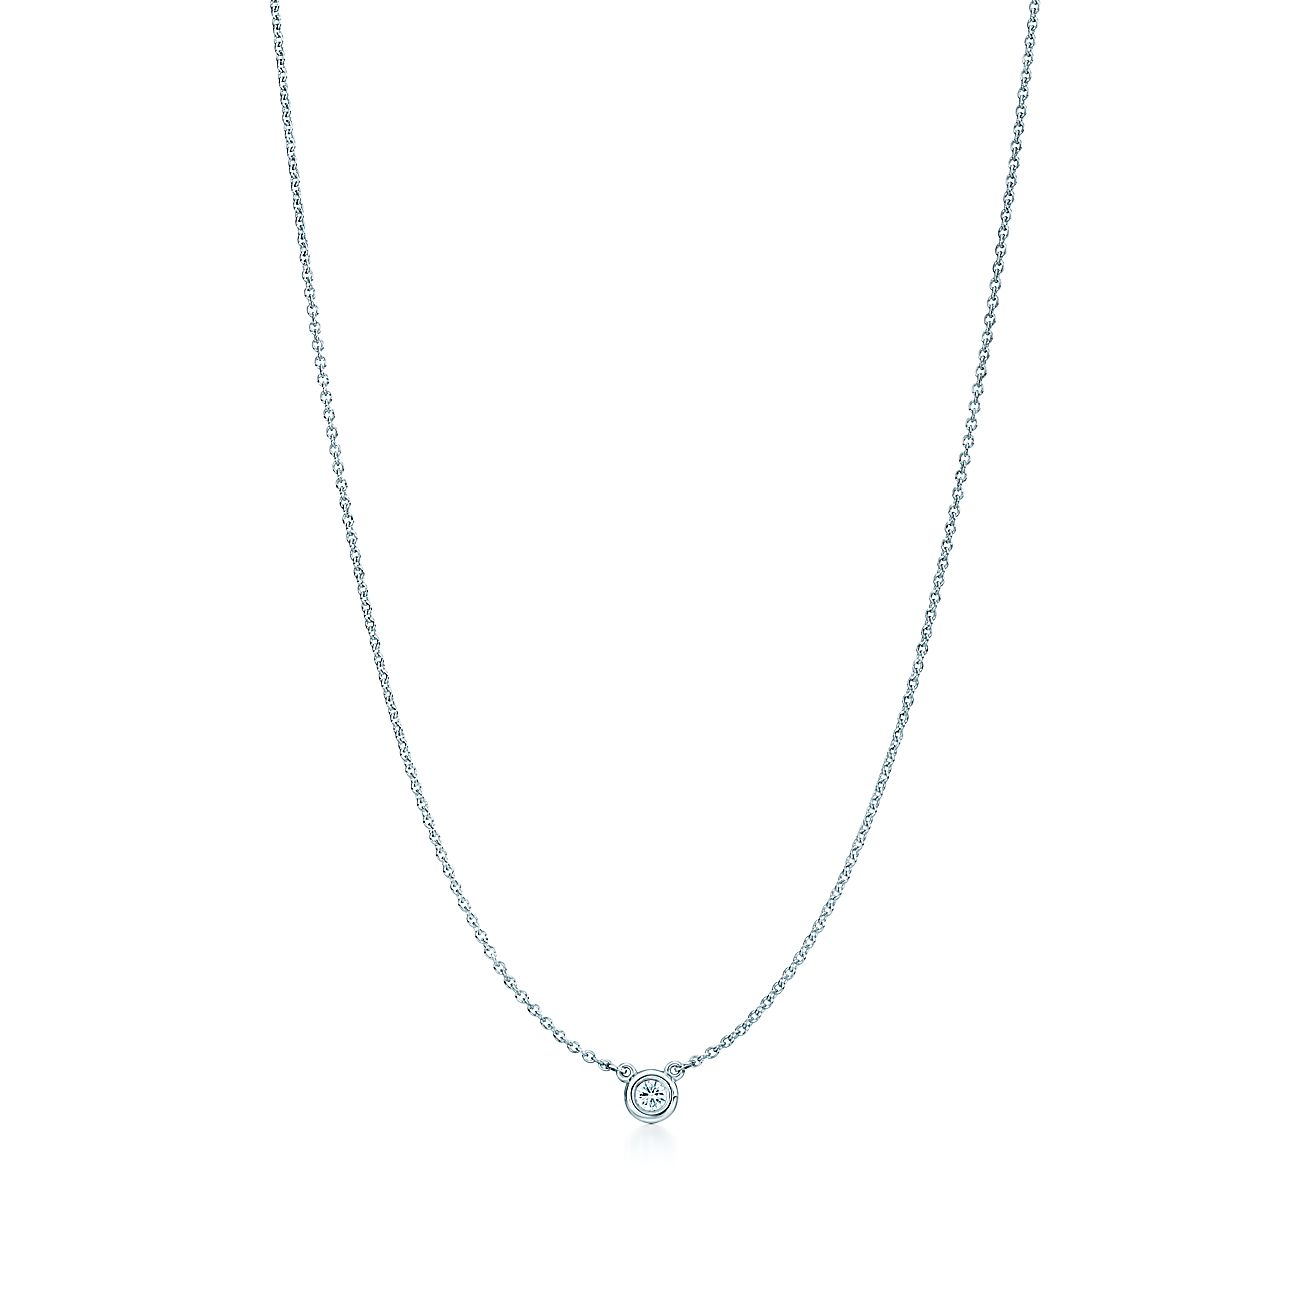 diamonds tiffany necklace fascinating heart diamond jewelry round lure pave with in pendant wg open nl set white gold